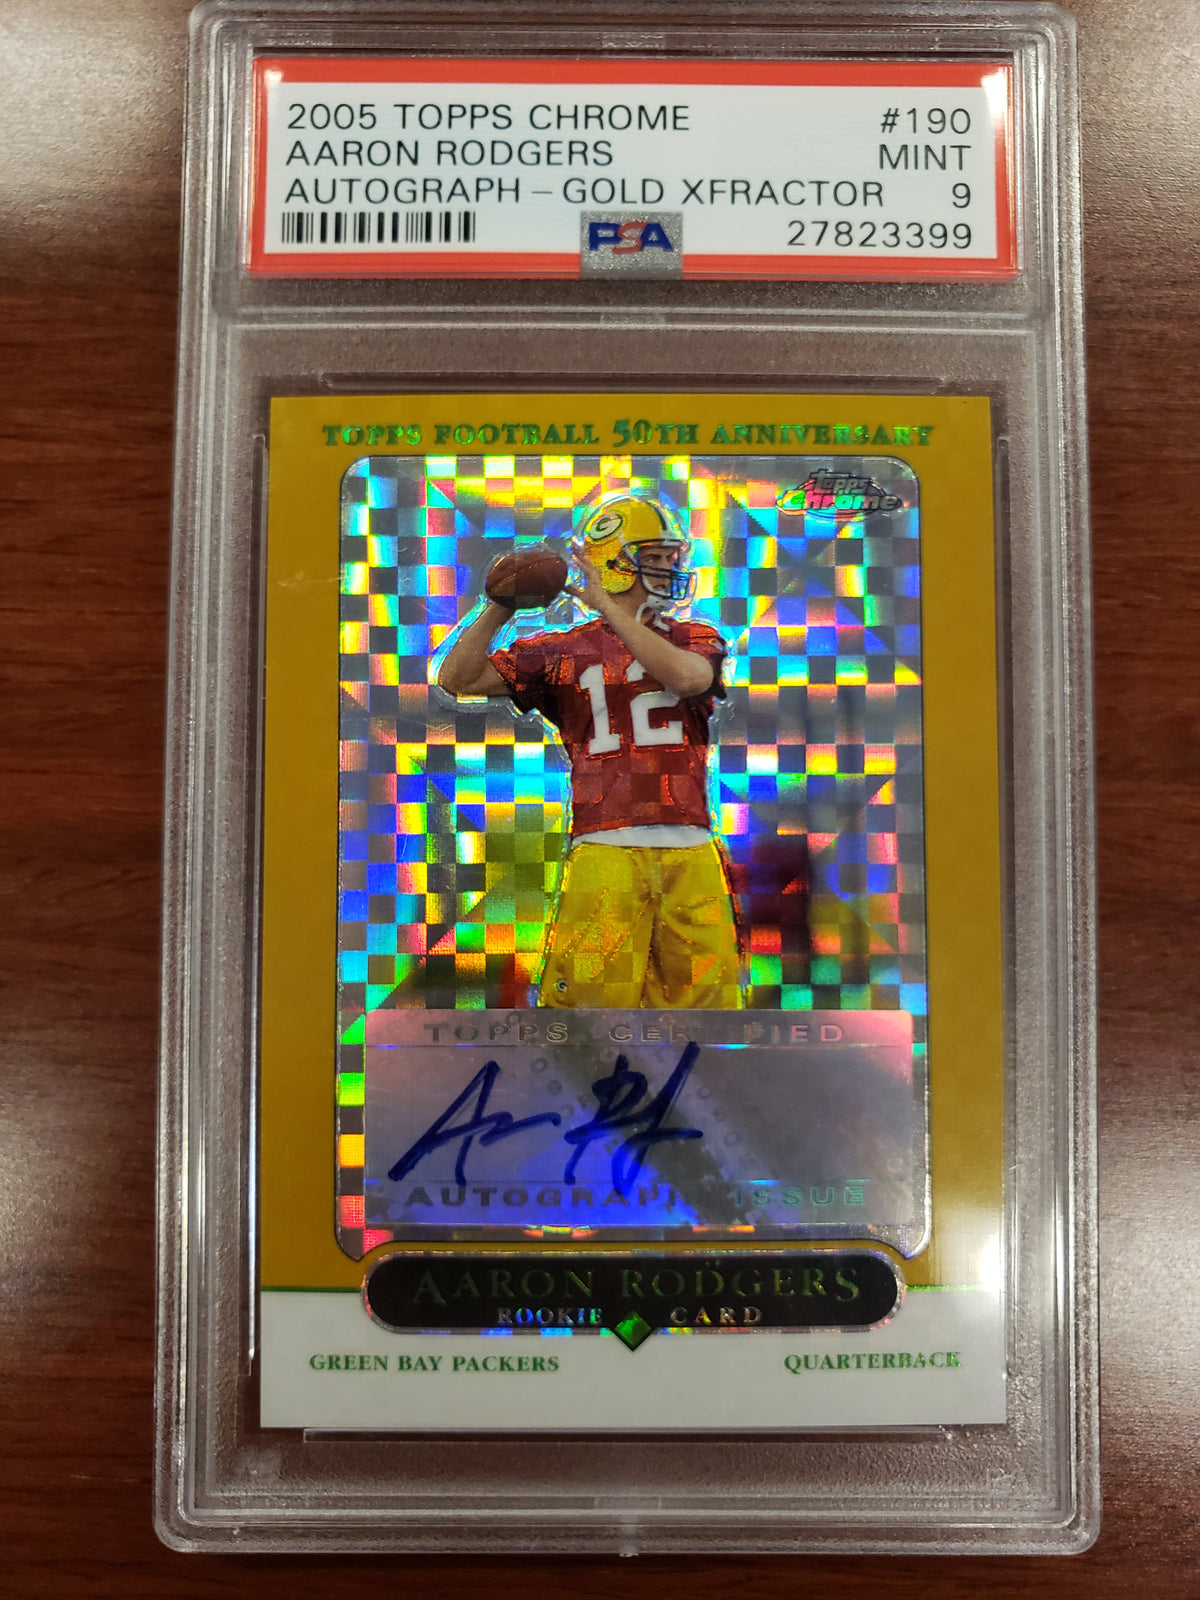 Aaron Rodgers 2005 Topps Chrome Gold Xfractor RC Rookie Auto /399 PSA 9 Mint